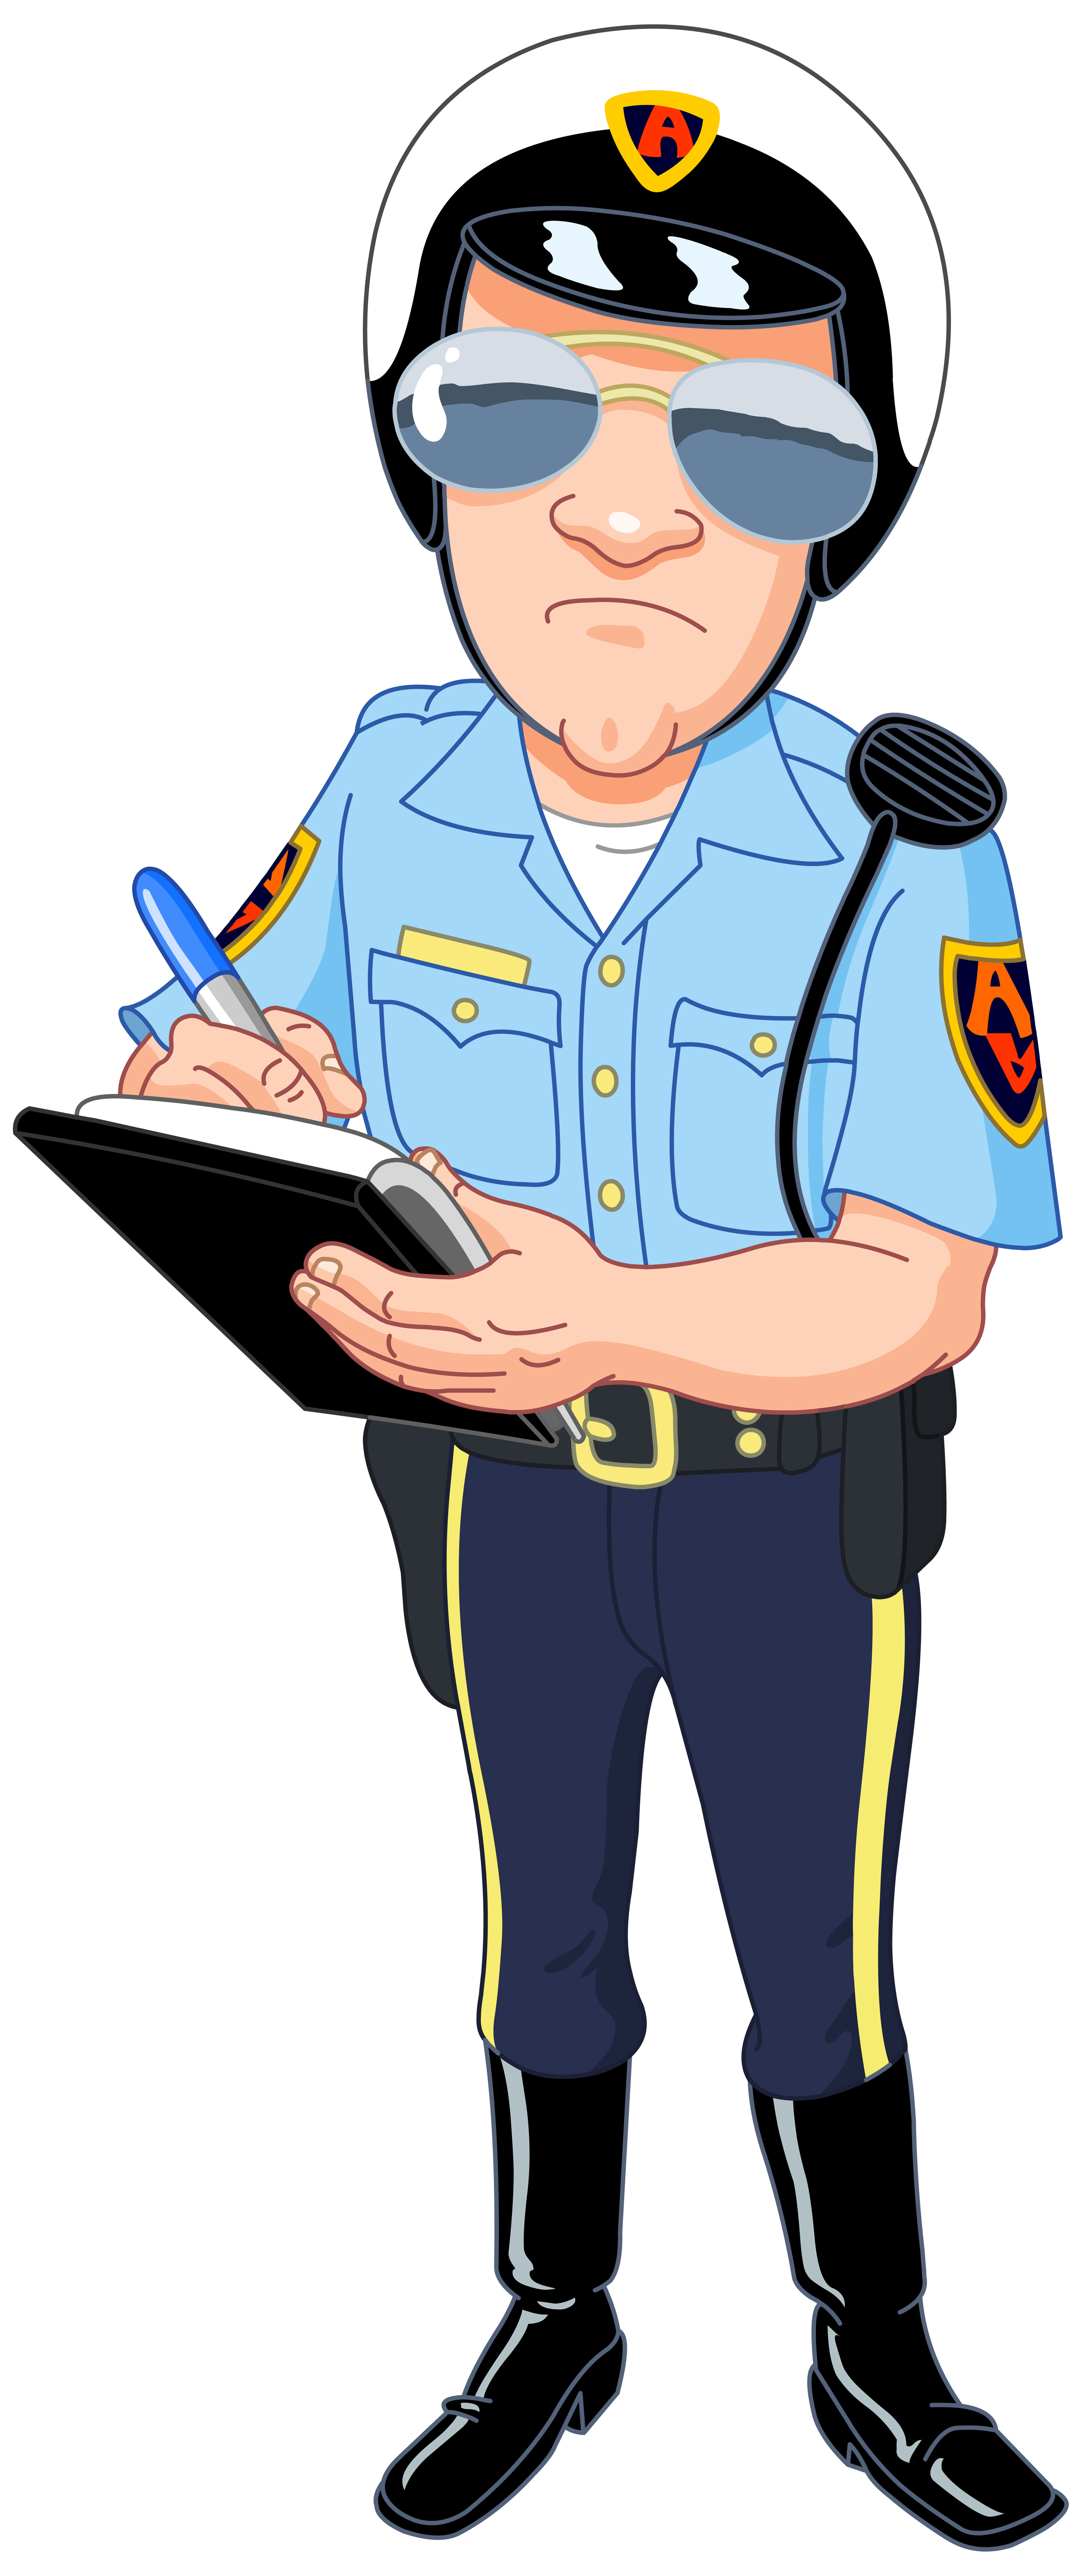 police officer writing a ticket for dui david o defense clipart police officer badge clip art police officer retirement